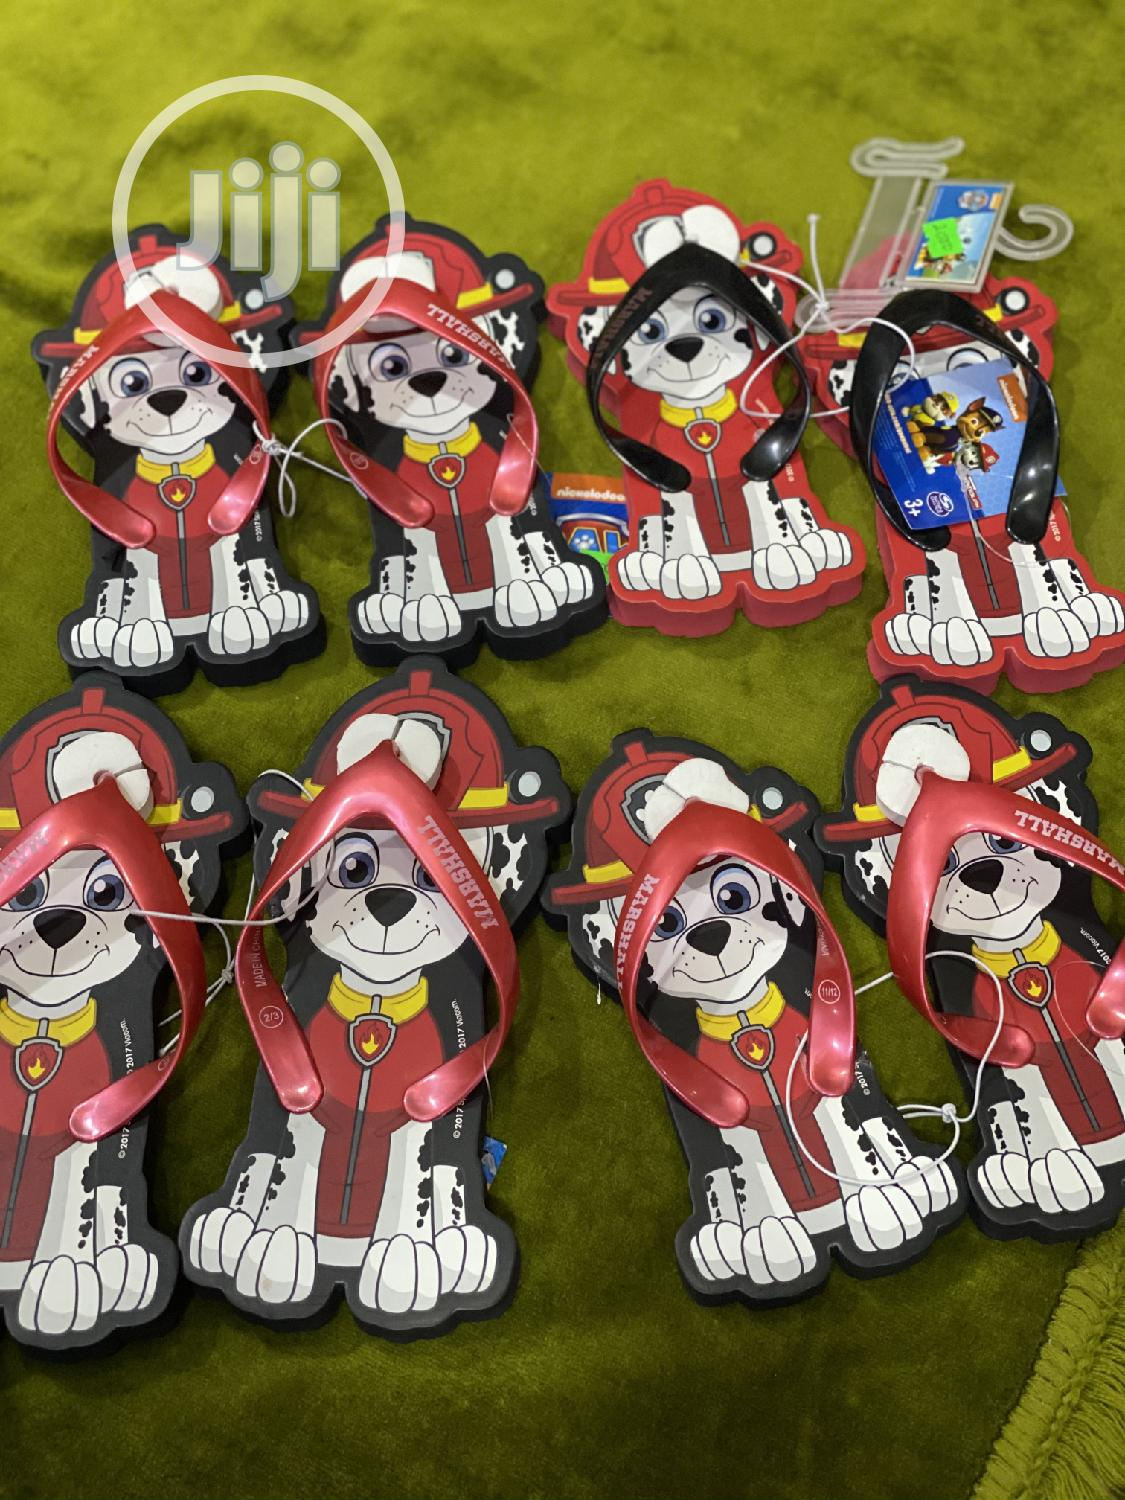 Paw Patrol Flipflop Sandals Available